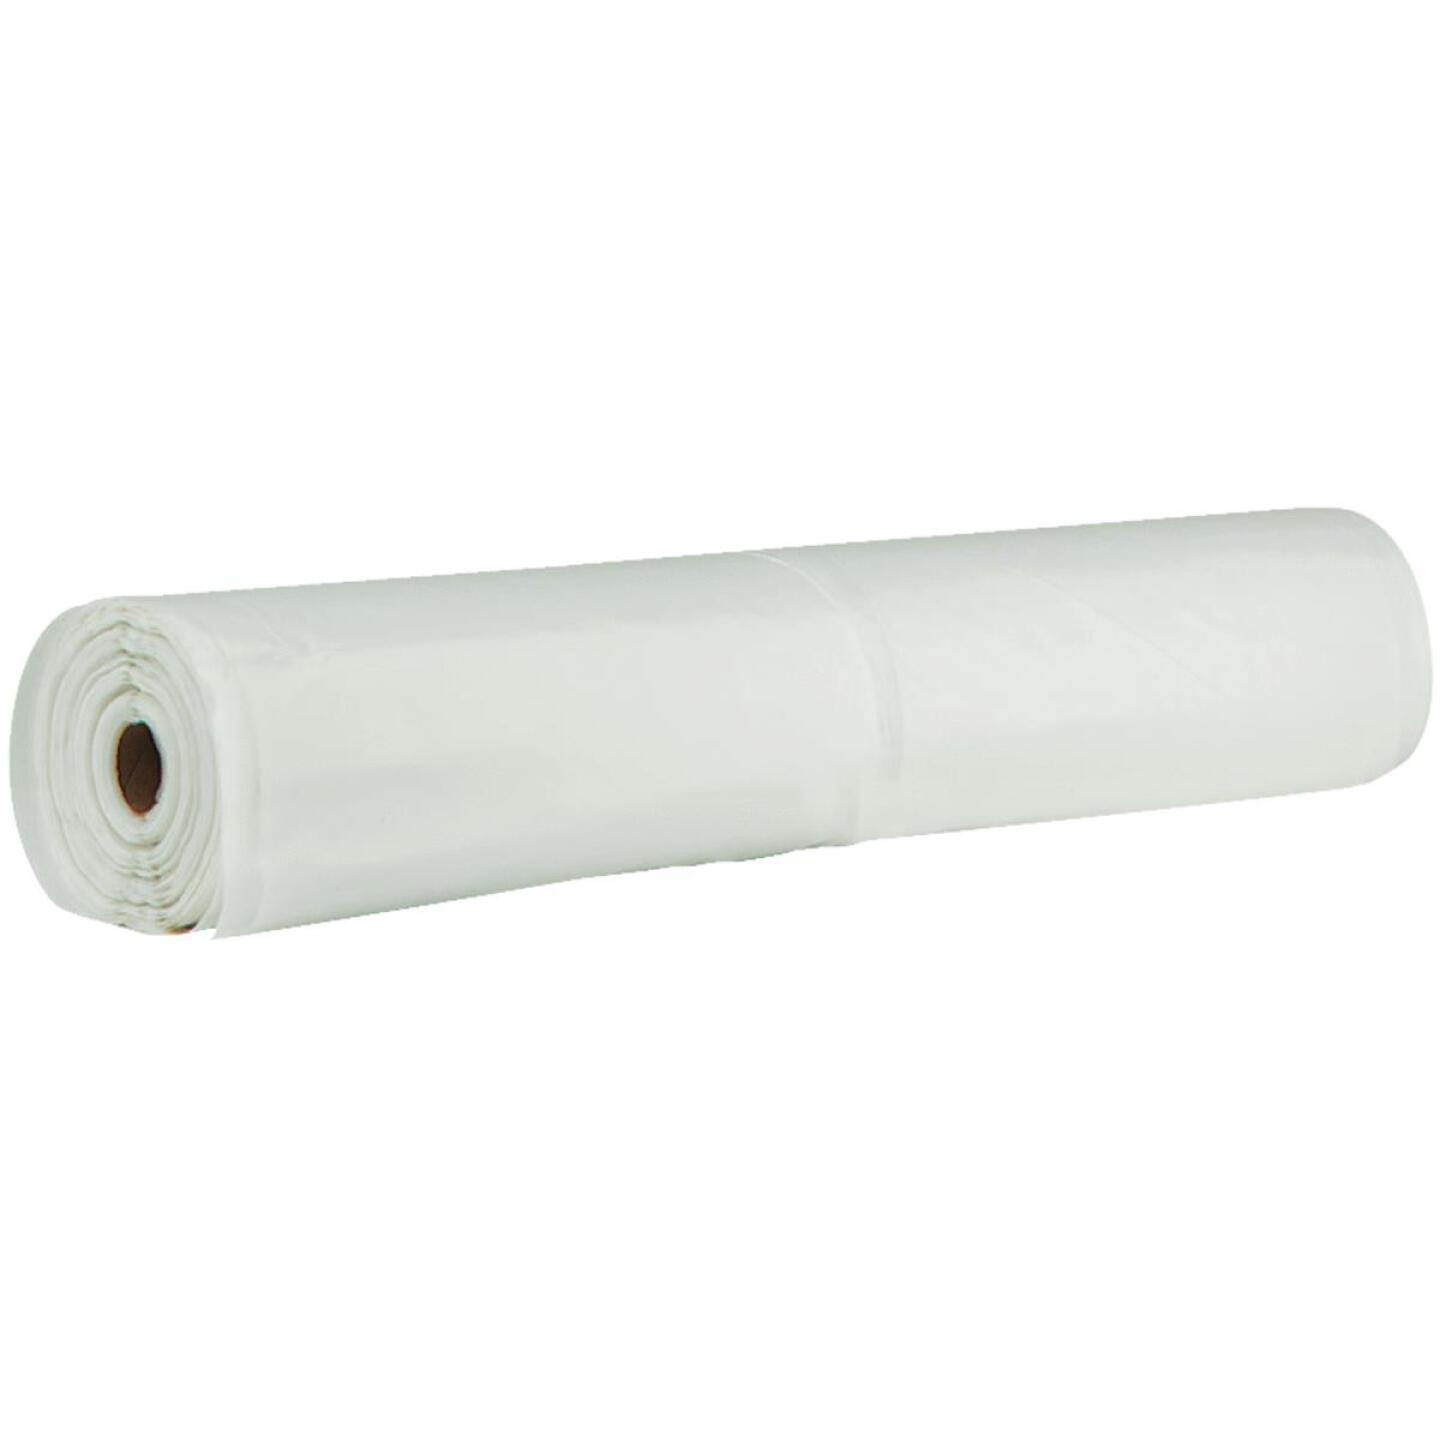 Film-Gard 10 Ft. x 100 Ft. Clear 4 Mil. Polyethylene Sheeting Image 1